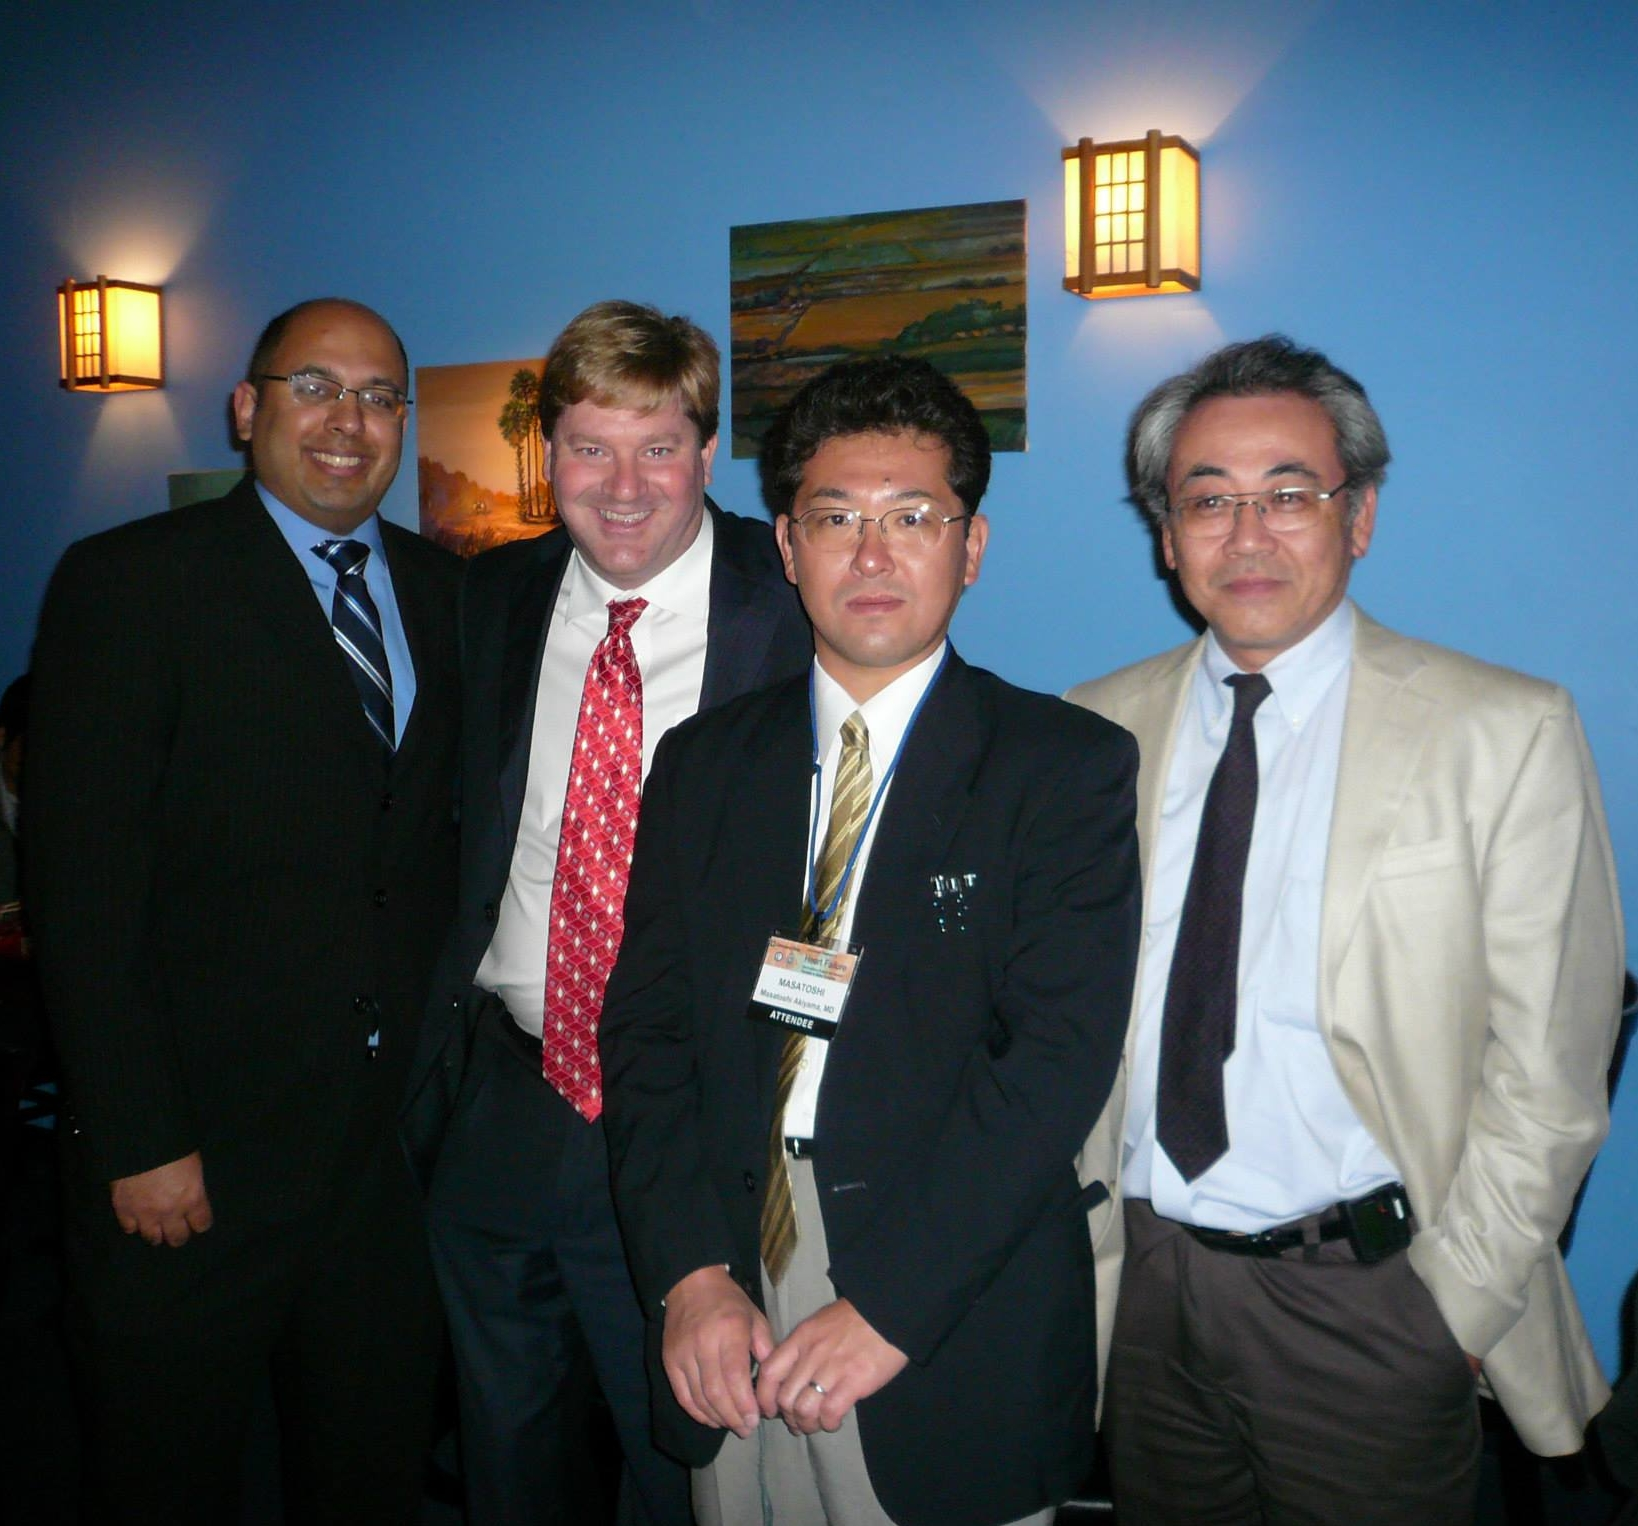 Dr. Maz, Dr. Fukamachi, Dr. Charles Richardson and Dr. Santash Rao, Cleveland Clinic with Cleveland Heart on Total Electric Heart and Transport System.